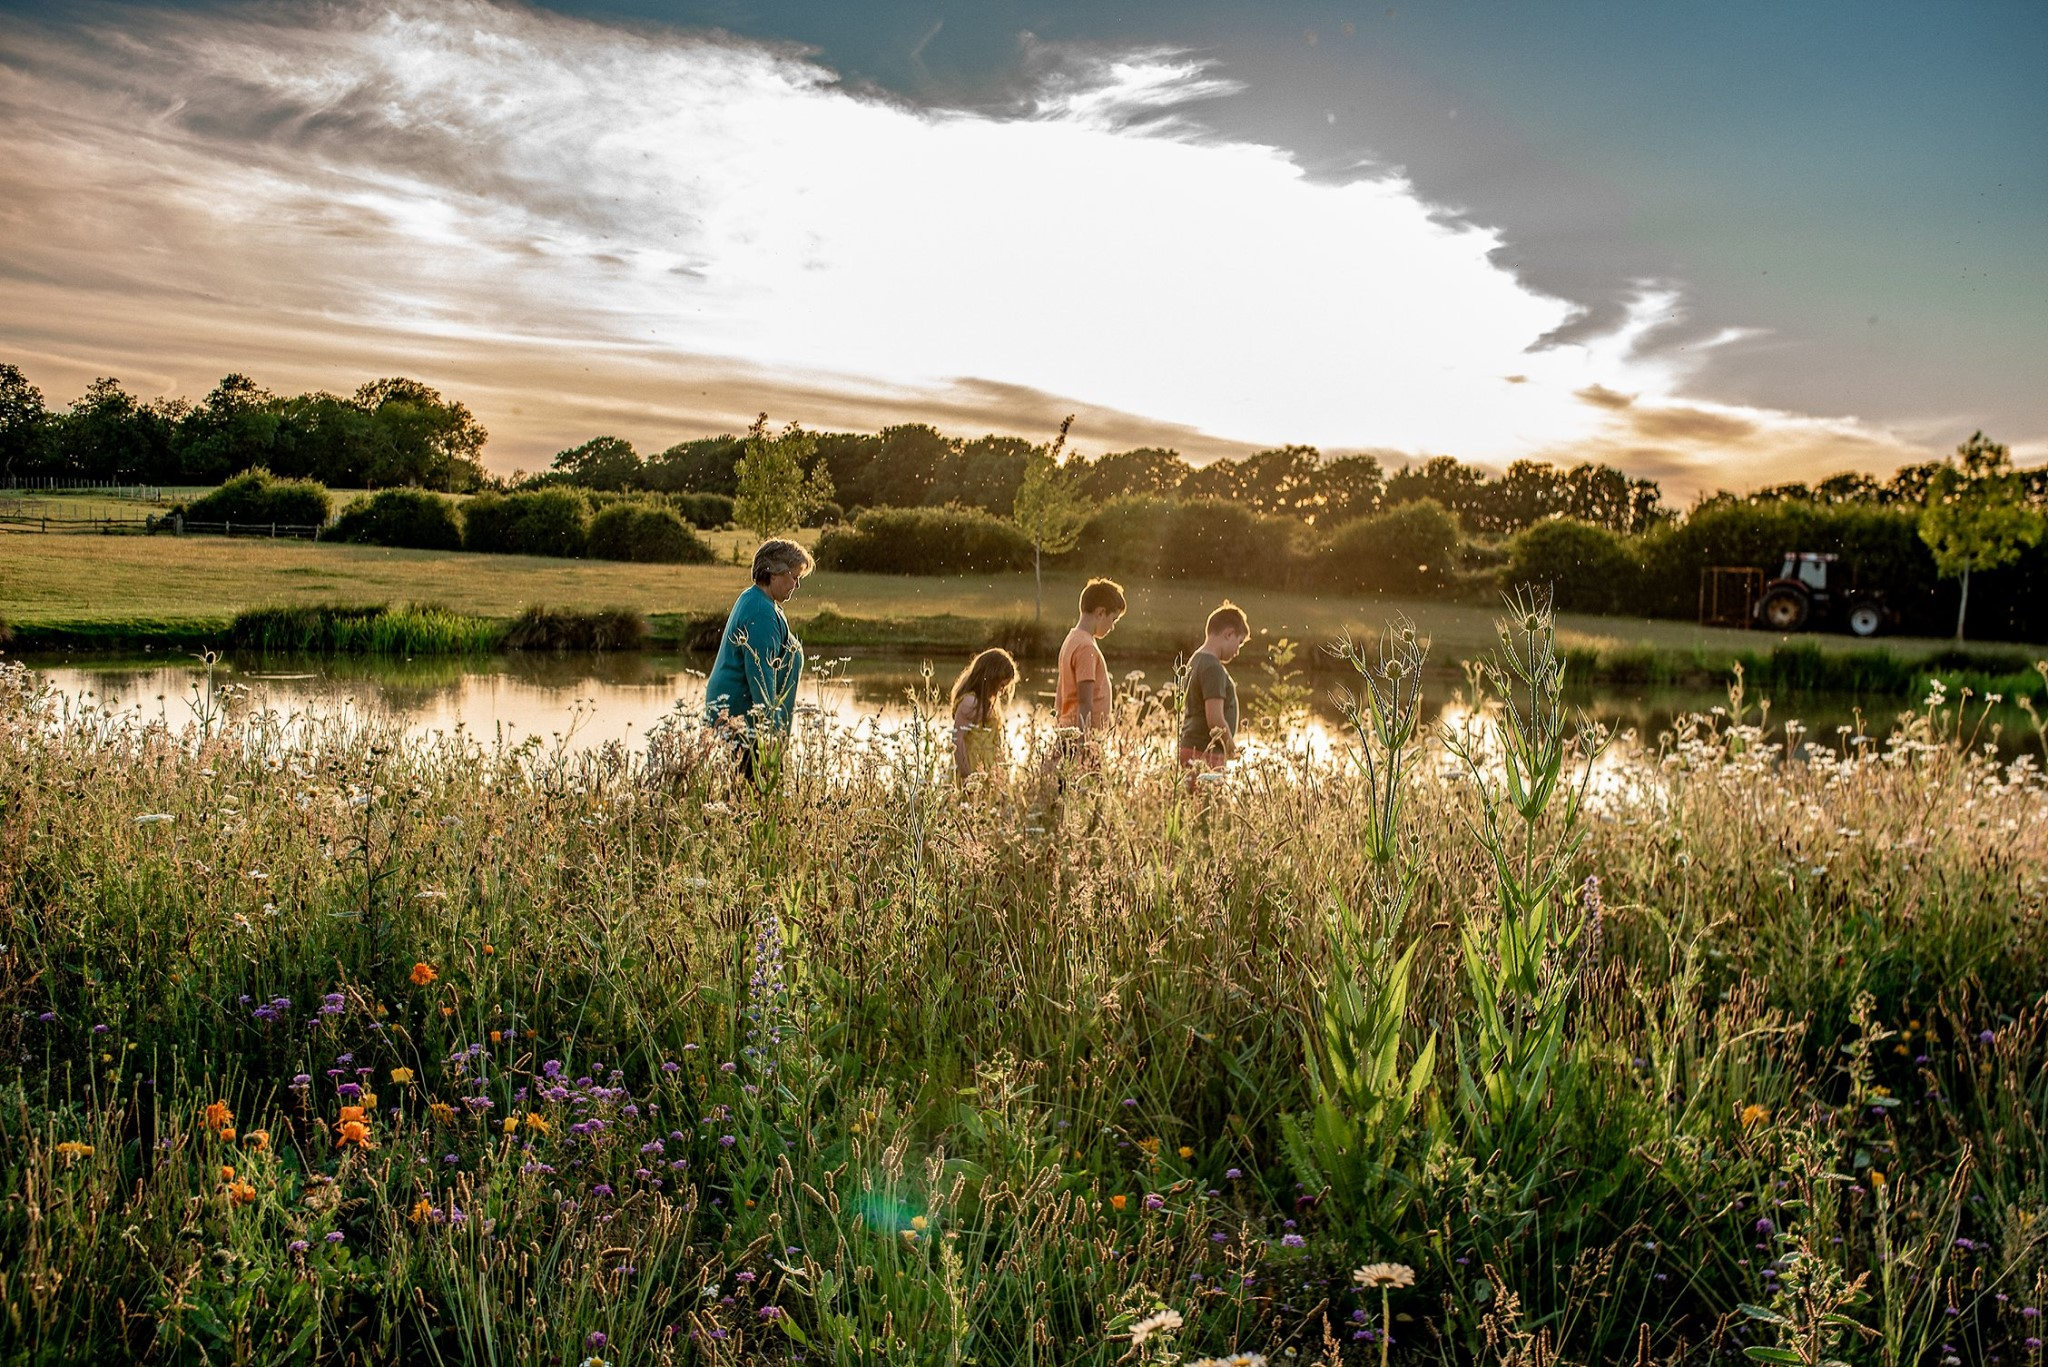 dougal photography, family photography, inspiration photography, outdoors photography, family photography, countryside photography